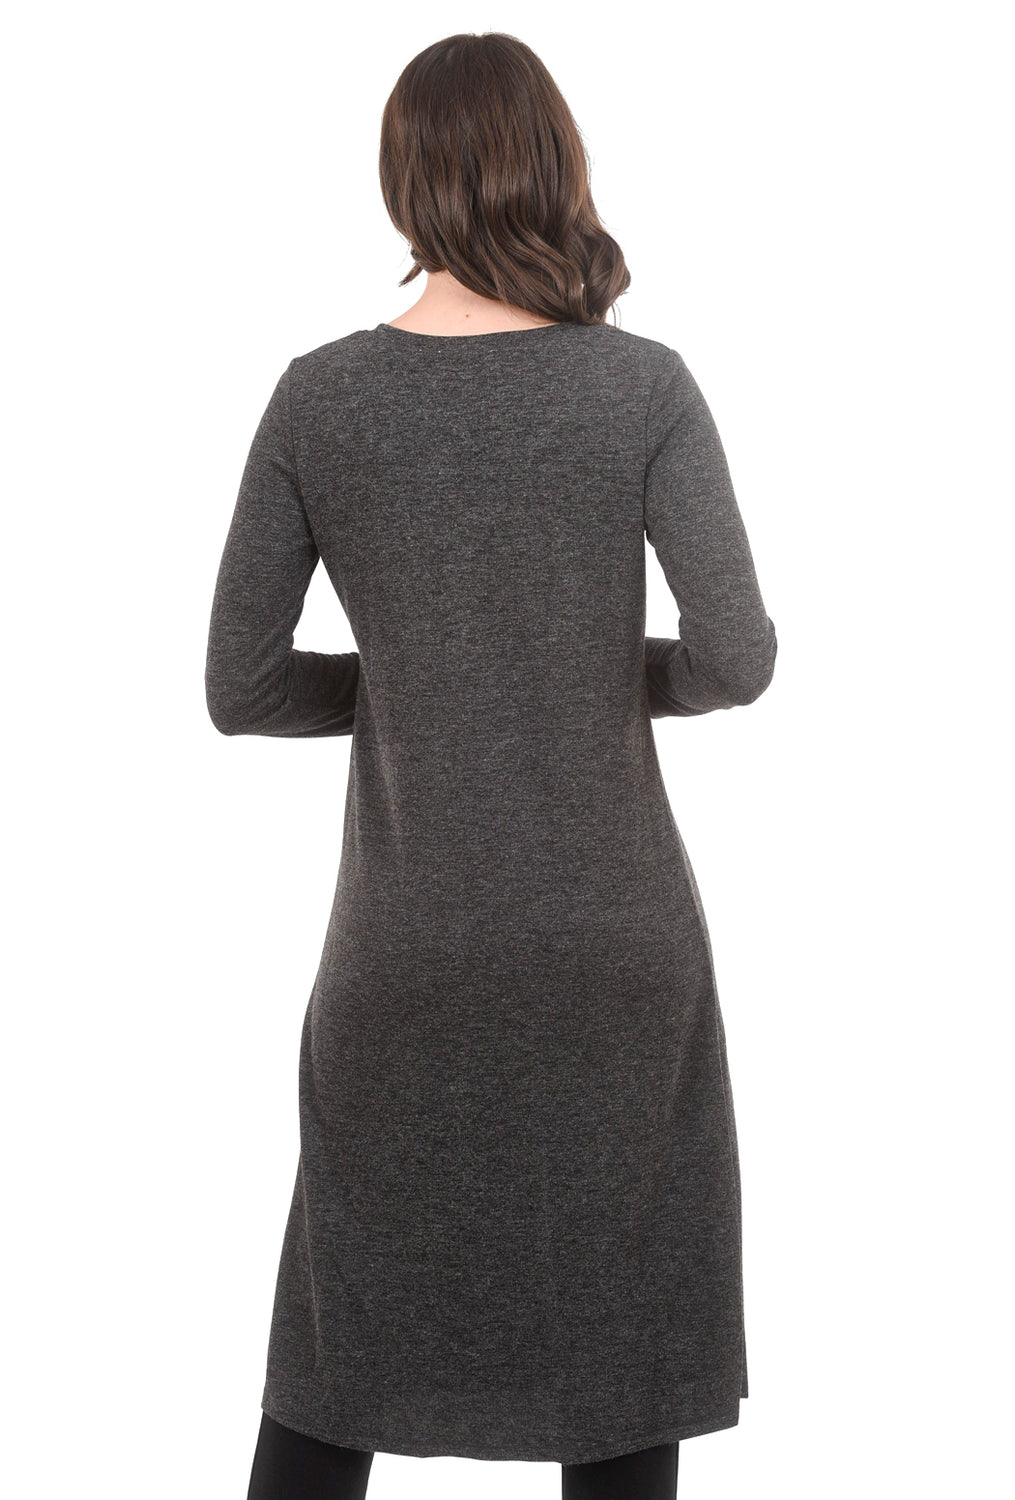 Patrizia Luca Front-Slit Sweater Tunic, Charcoal